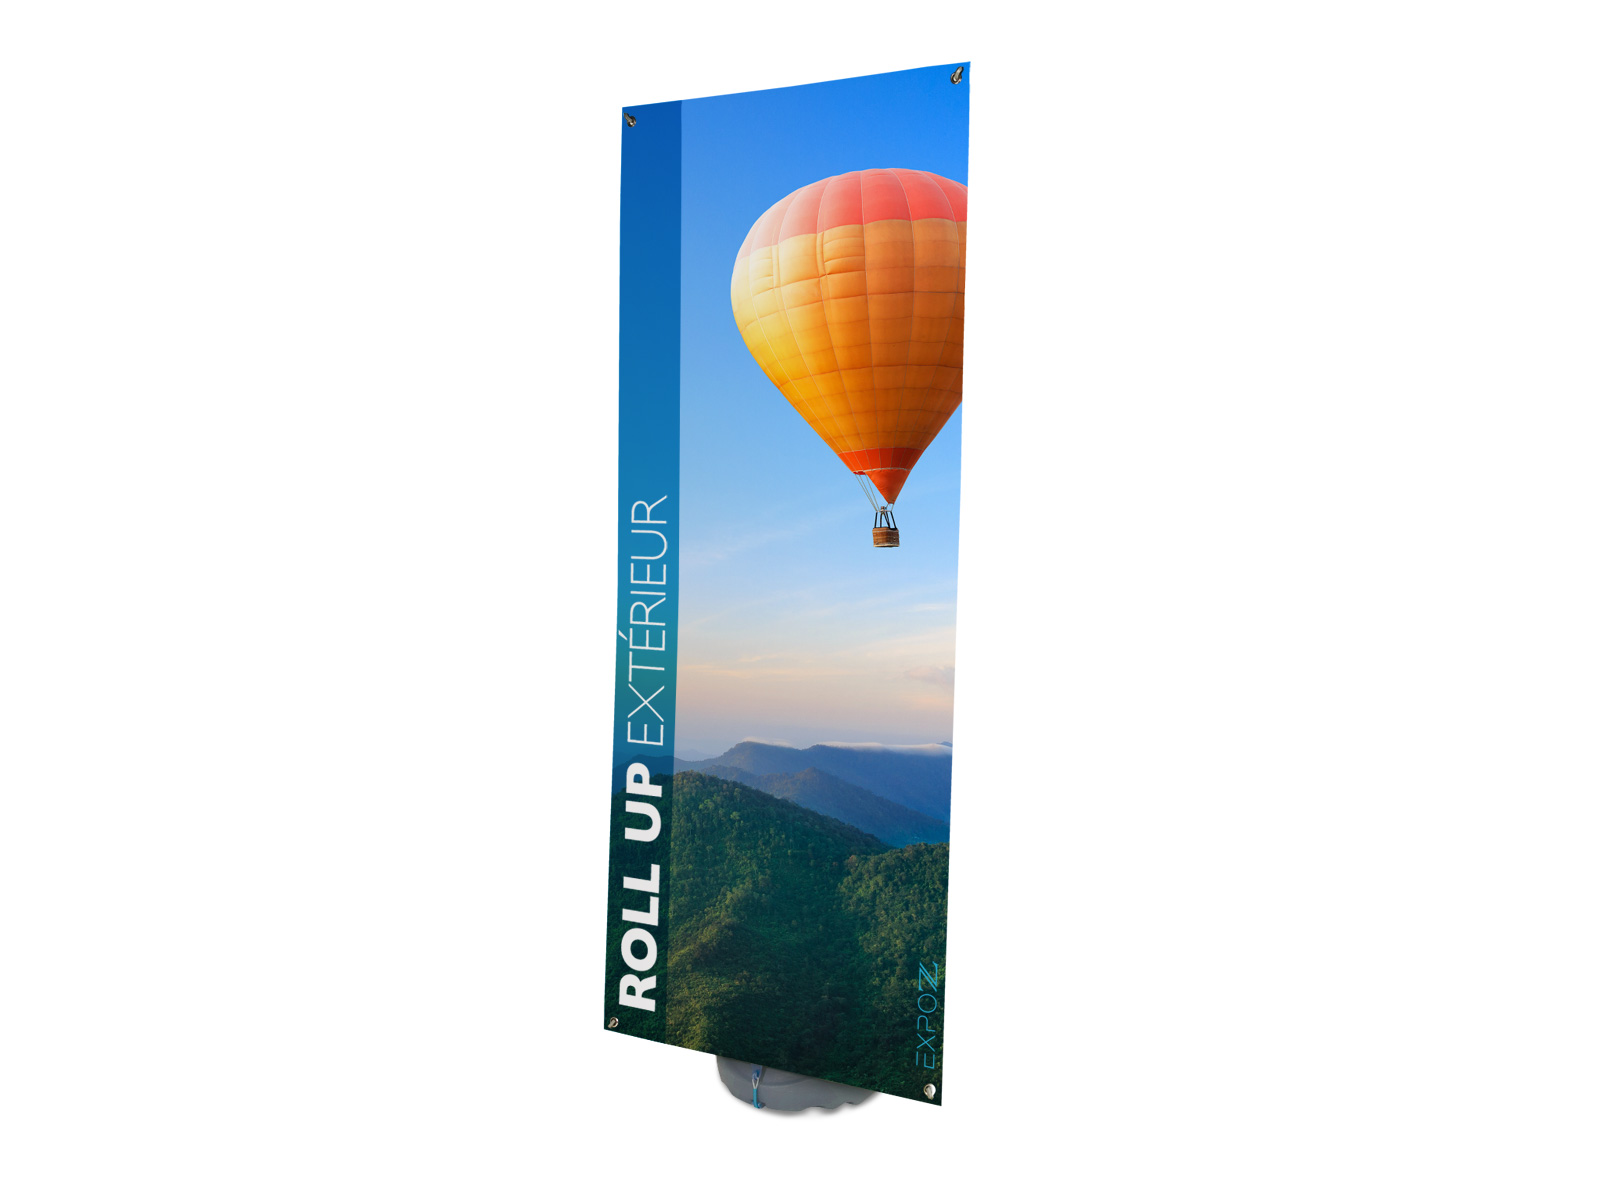 Roll-up Exterior 80 x 200 cm